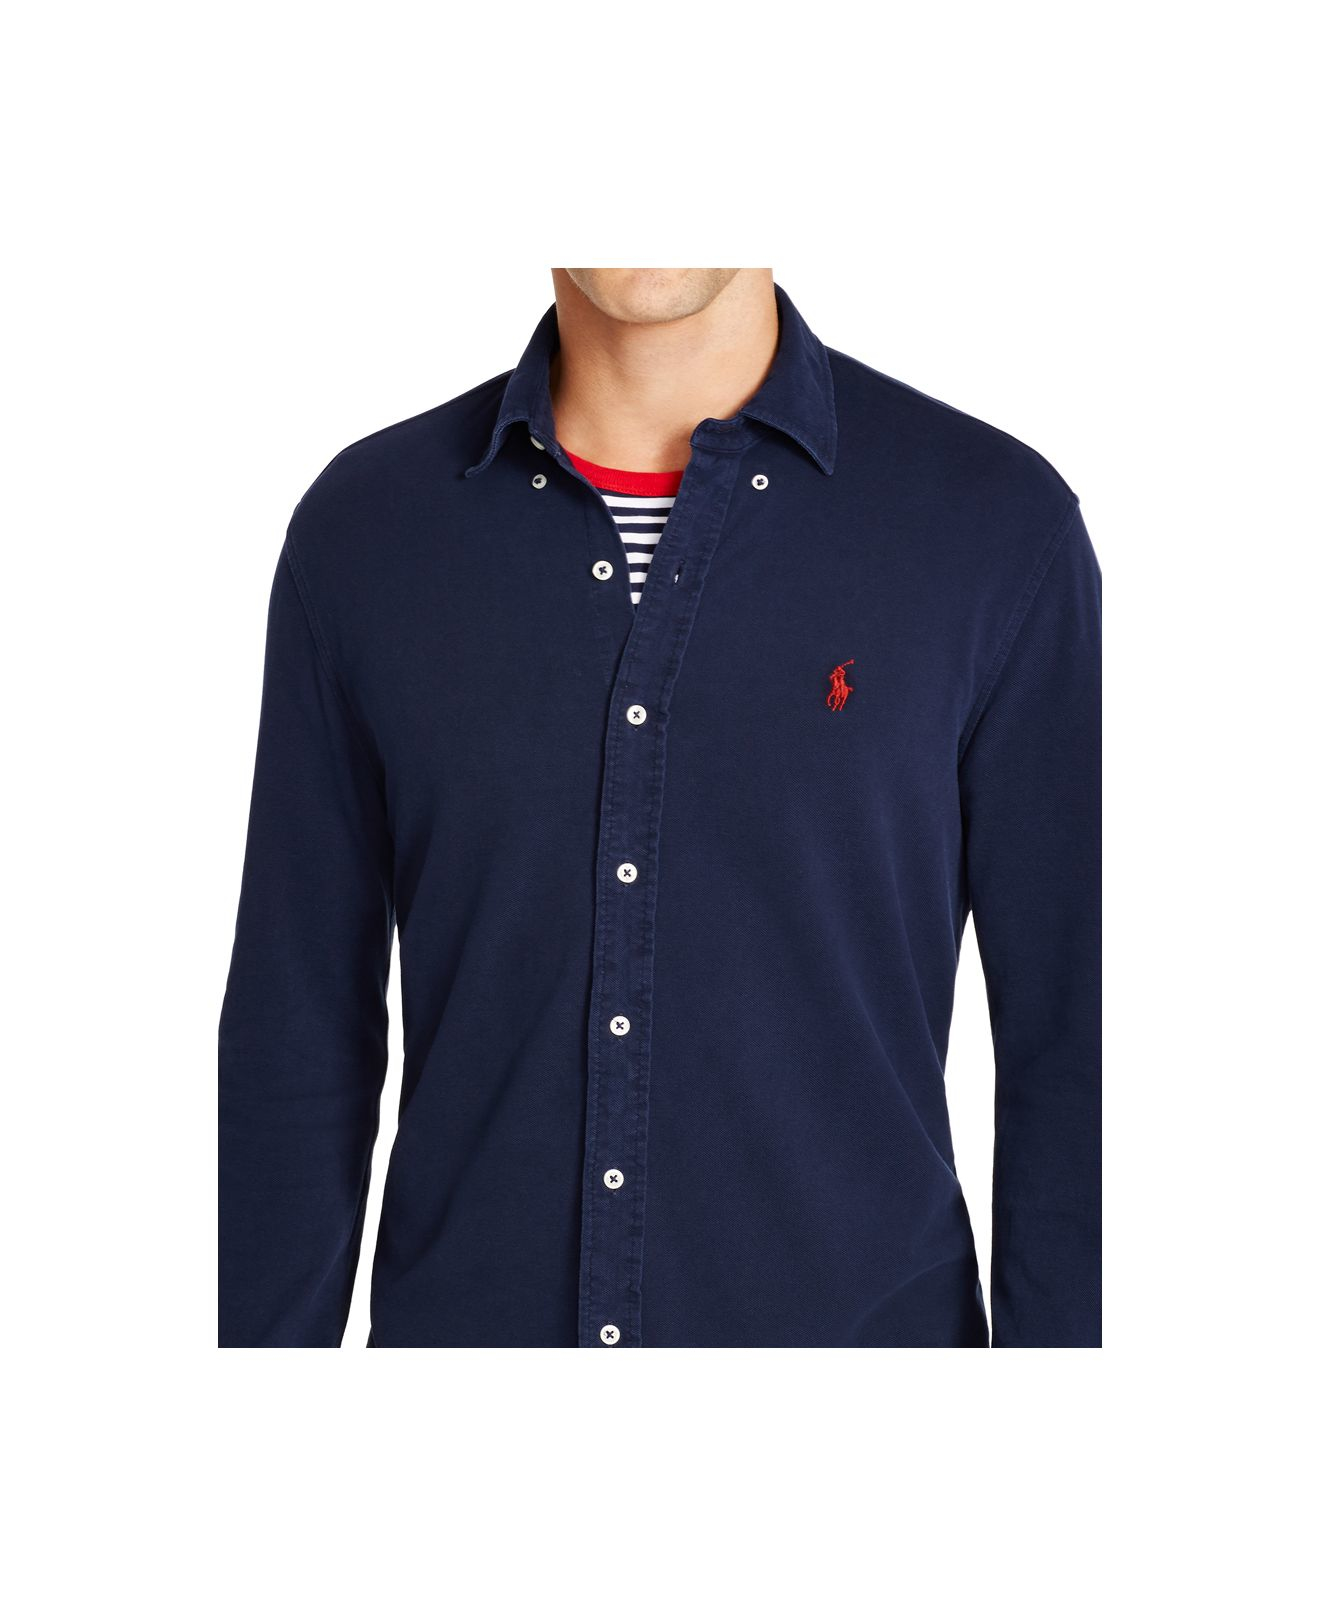 56221fd6 Polo Ralph Lauren Featherweight Mesh Button-down Shirt in Blue for ...